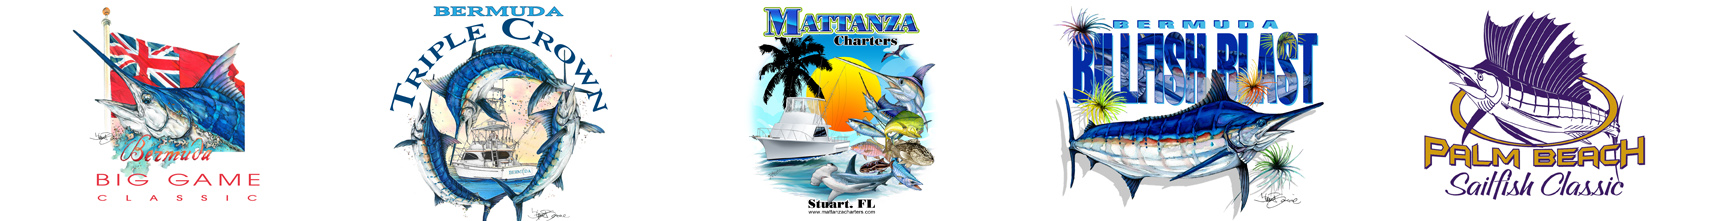 CHARTER BOAT DESIGNS